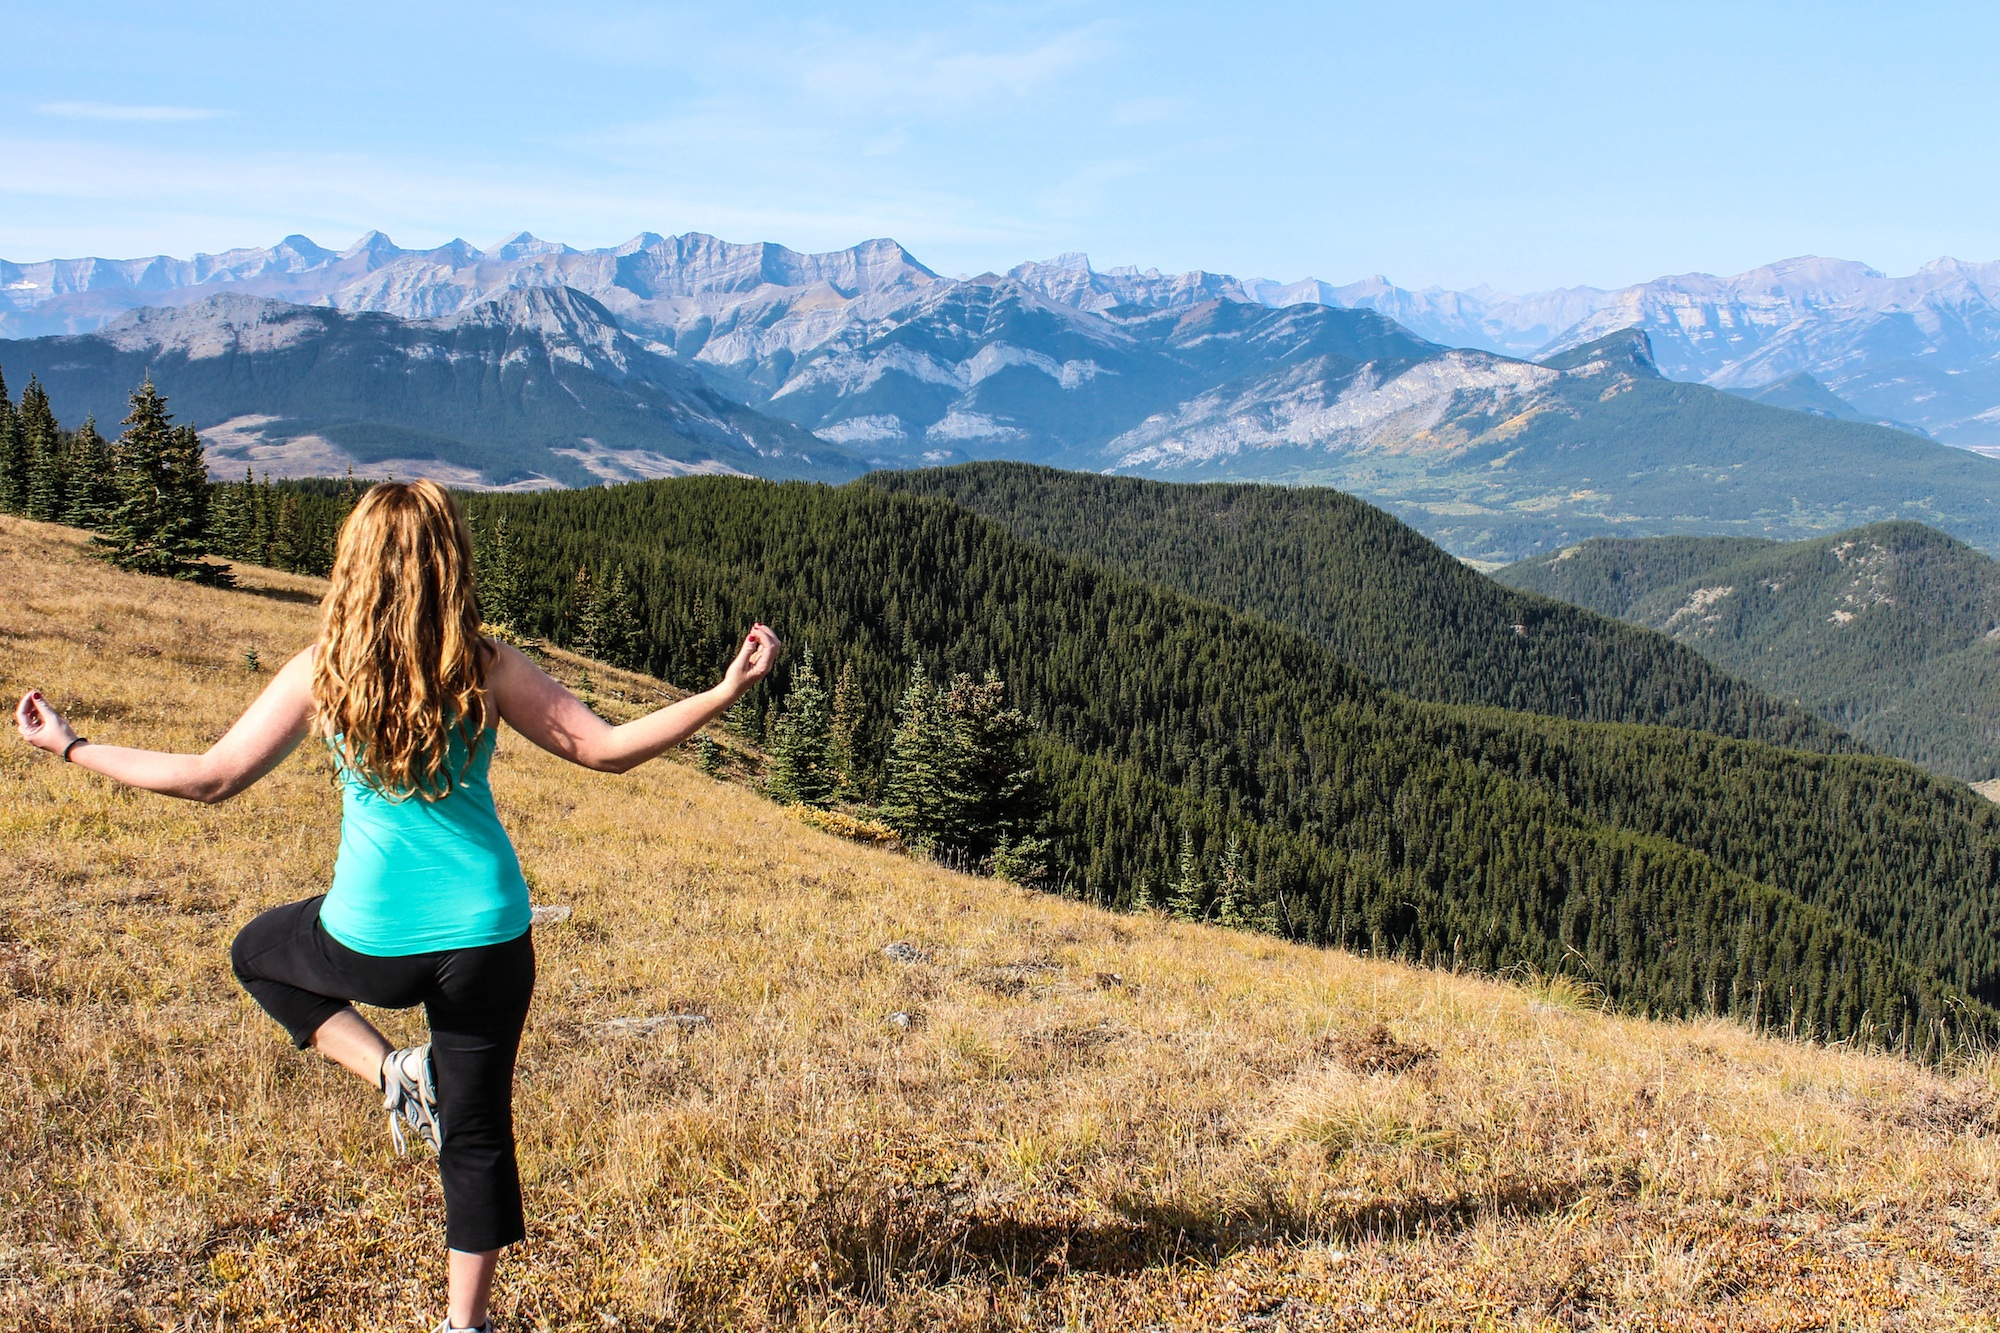 Heli yoga in the mountains